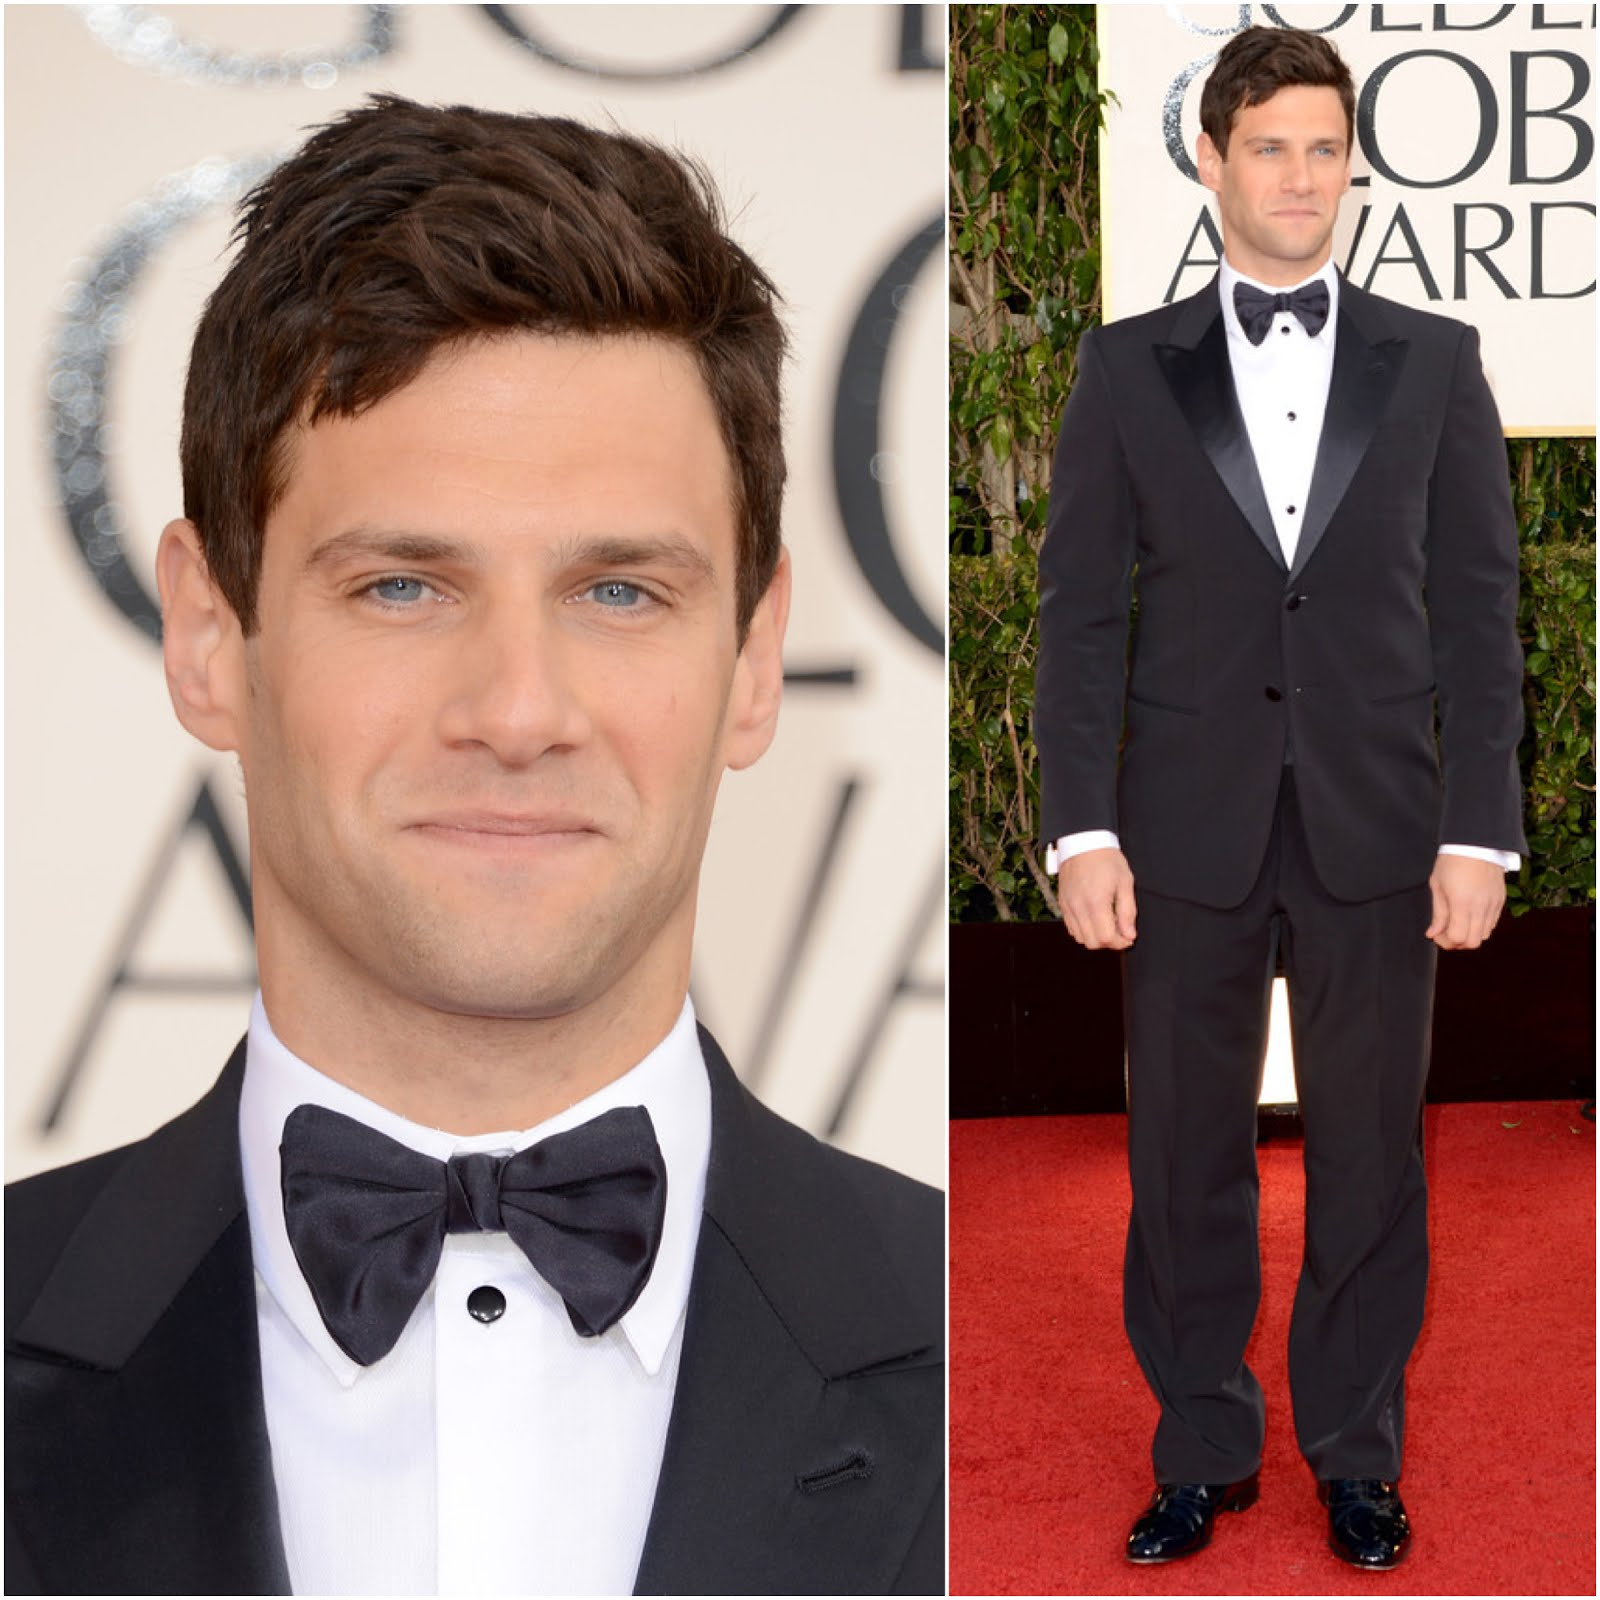 00O00 Menswear Blog Justin Bartha in Giorgio Armani - 70th Annual Golden Globe Awards